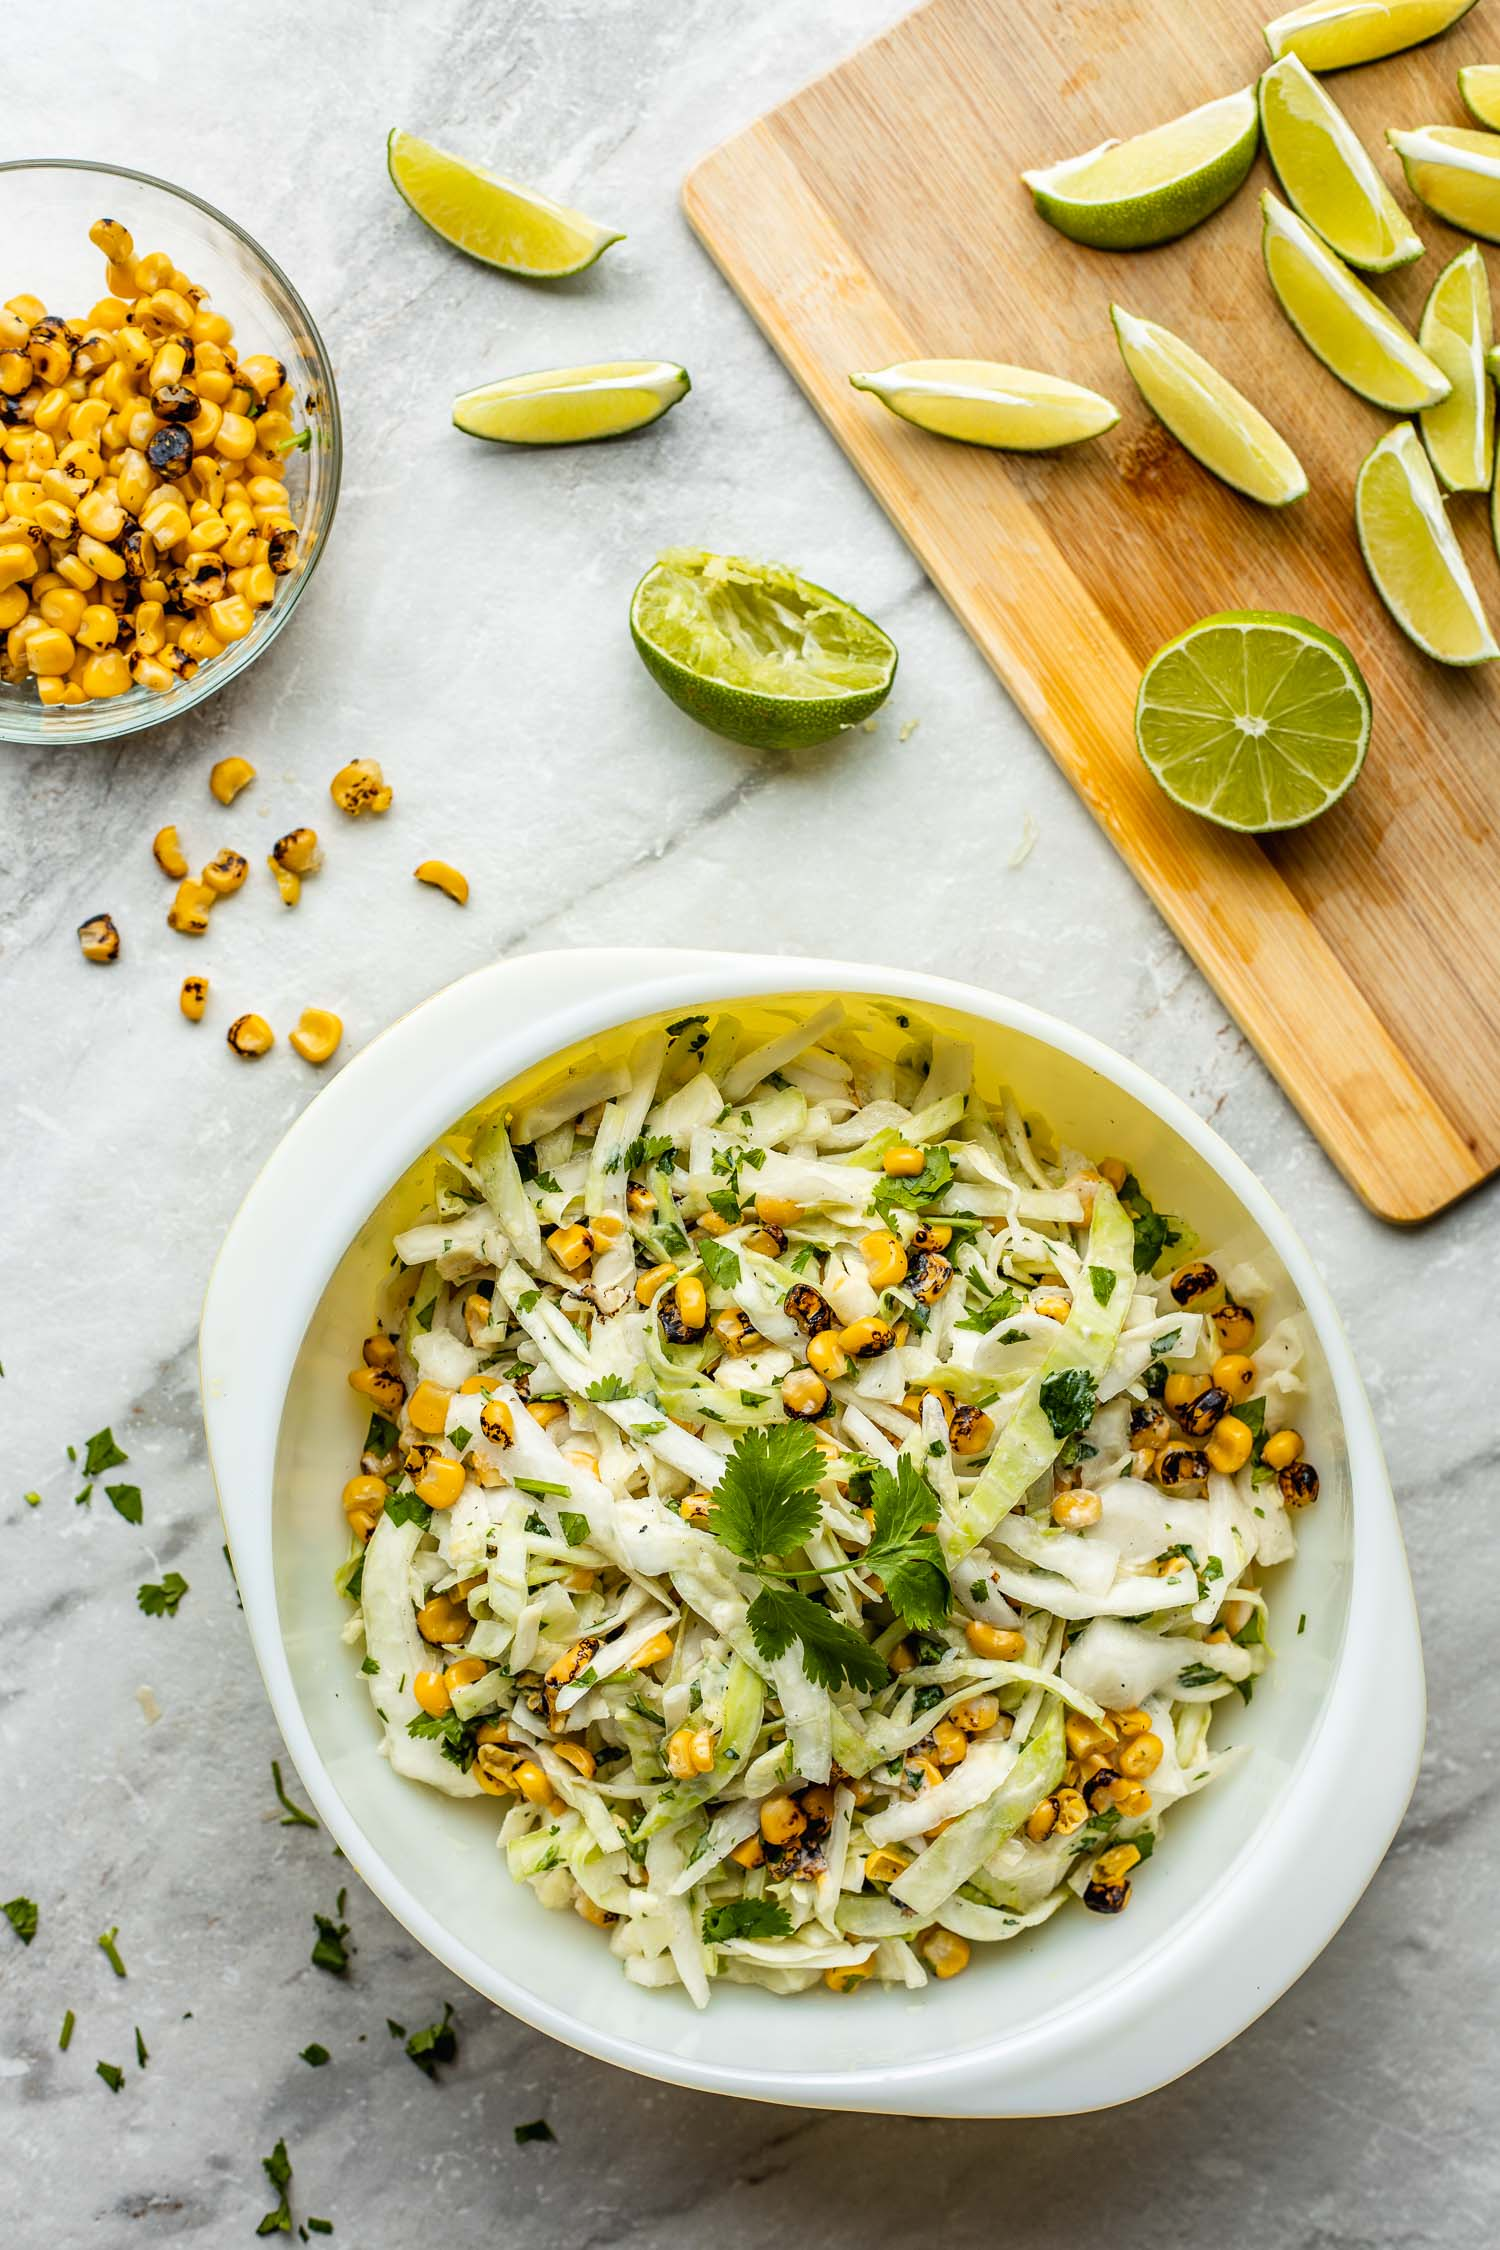 health food cooking scene on white and gray marble with bowl of coleslaw, bowl of blackened corn, and cutting board holding slices of lime, cilantro scattered on marble